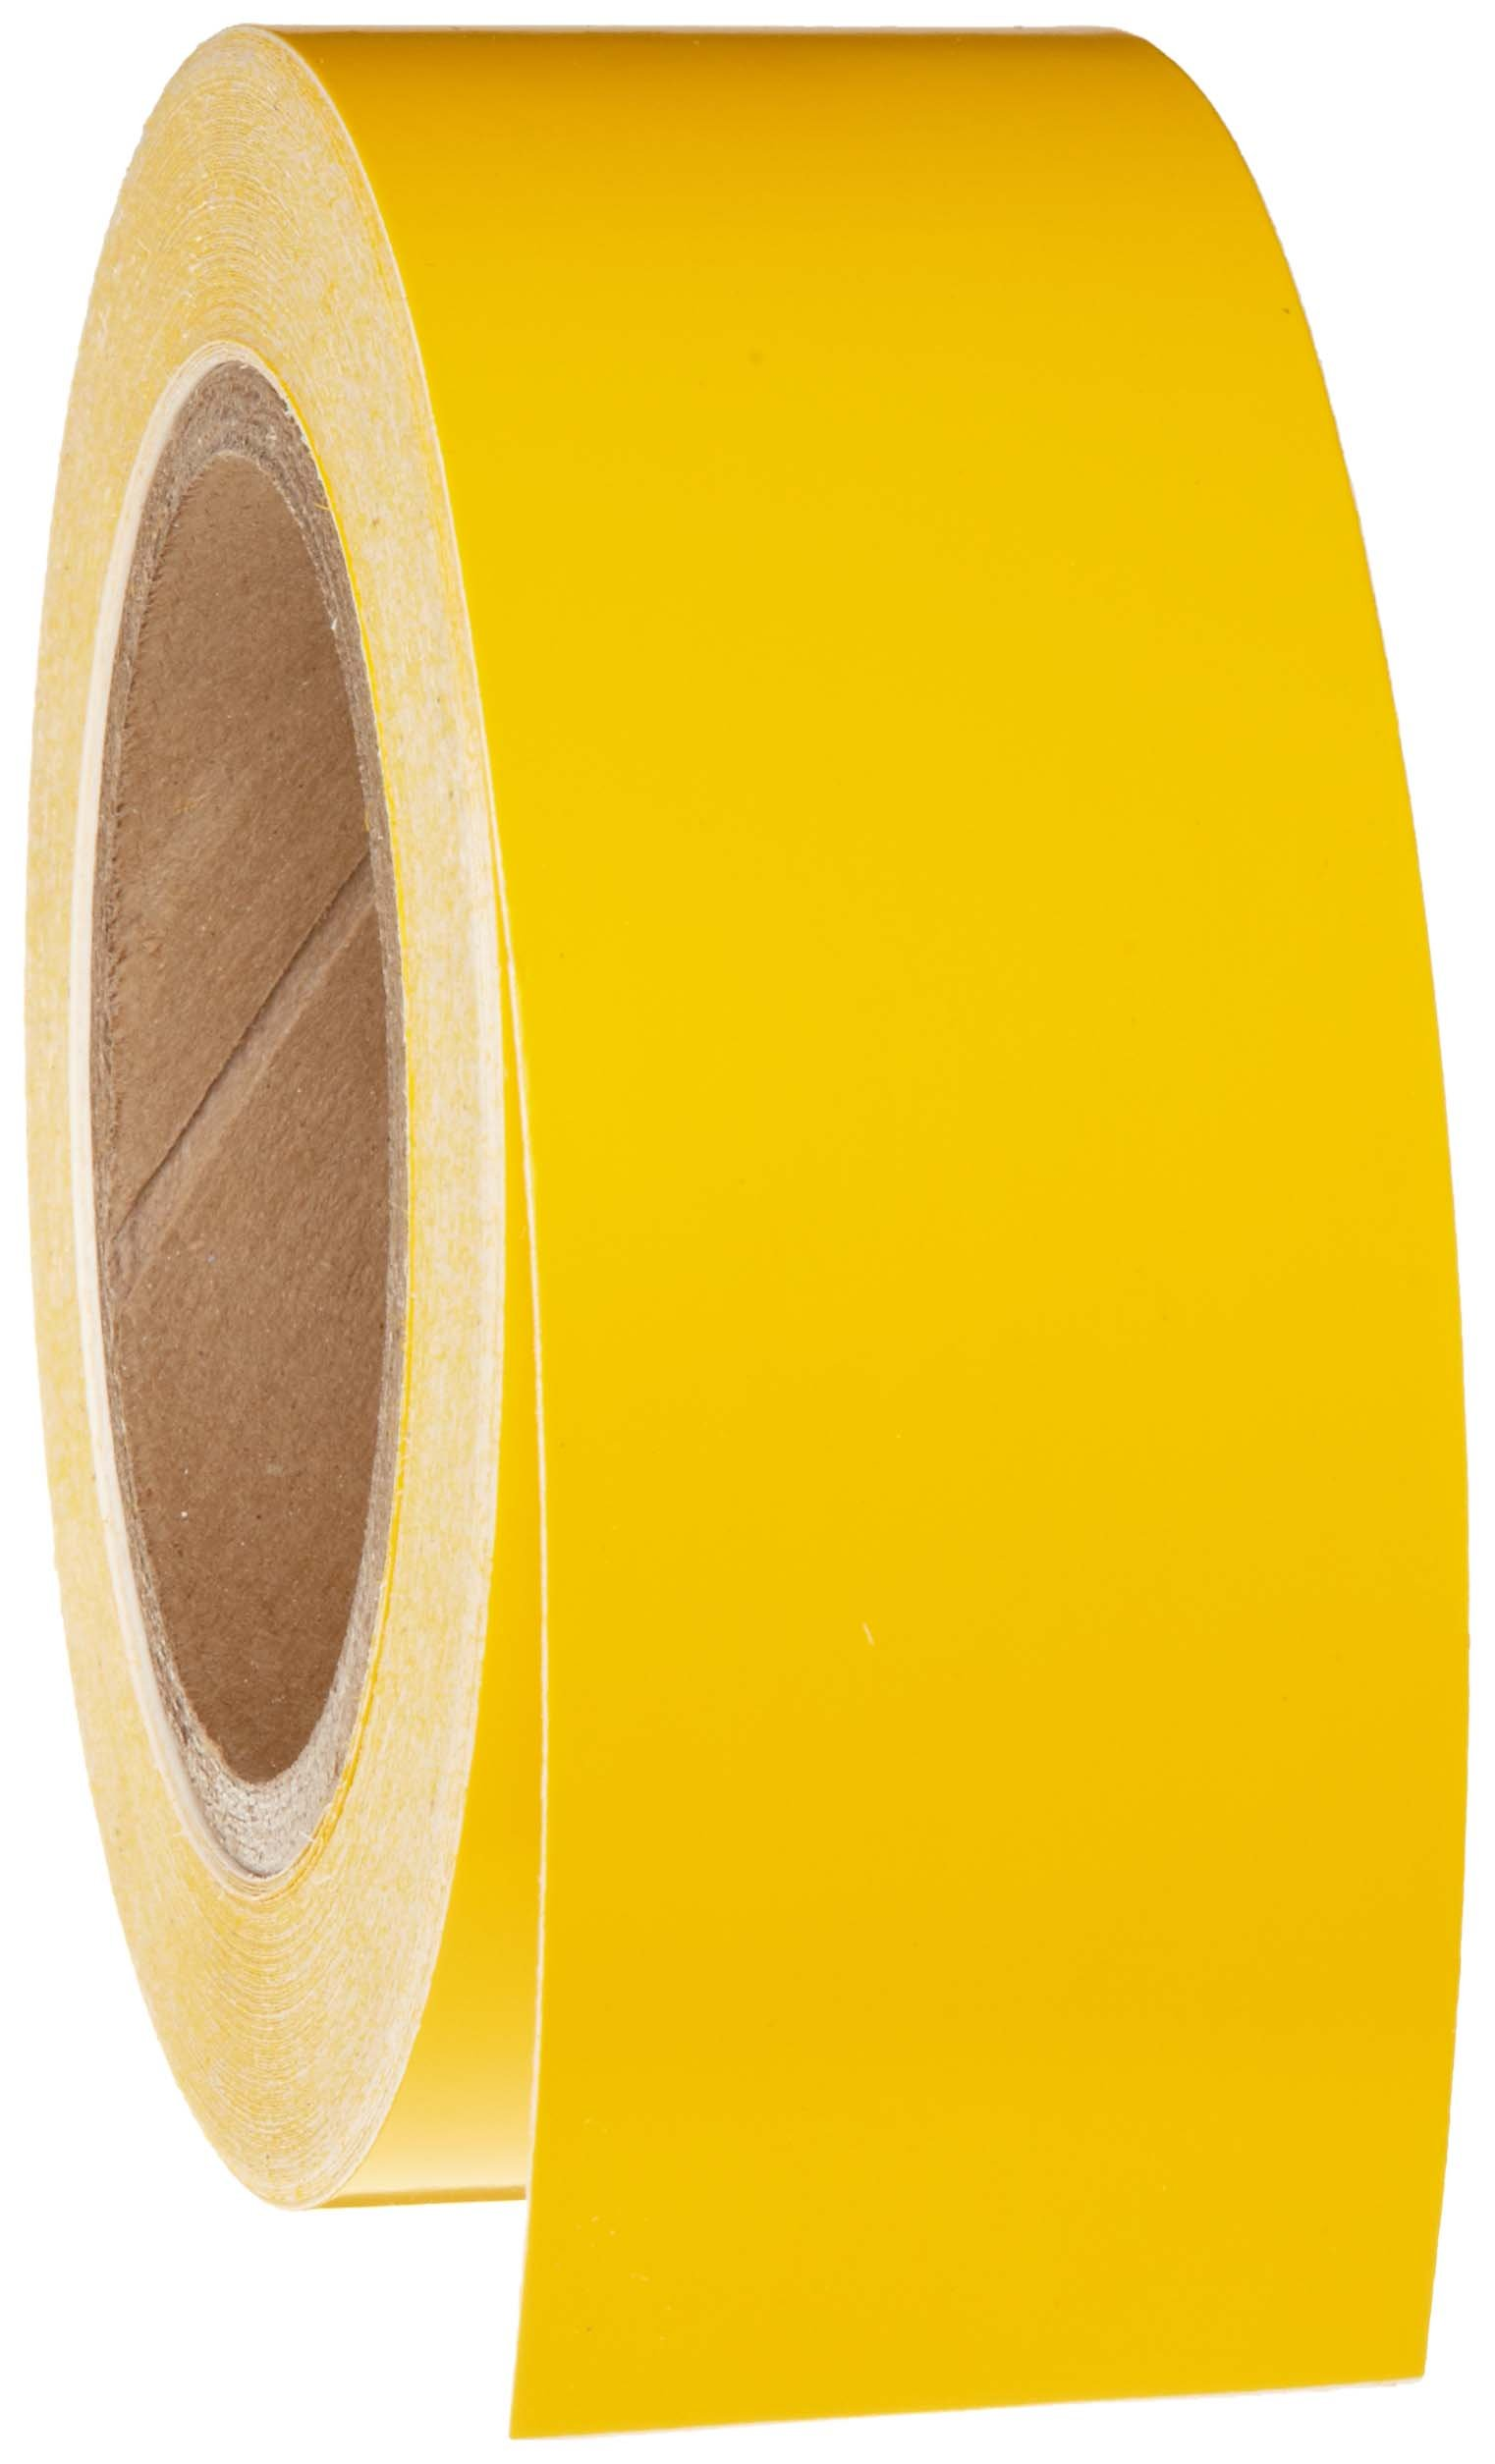 Brady 55260 Length, 2'' Width, B-946 High Performance Vinyl 90' Yellow Color Pipe Banding Tape